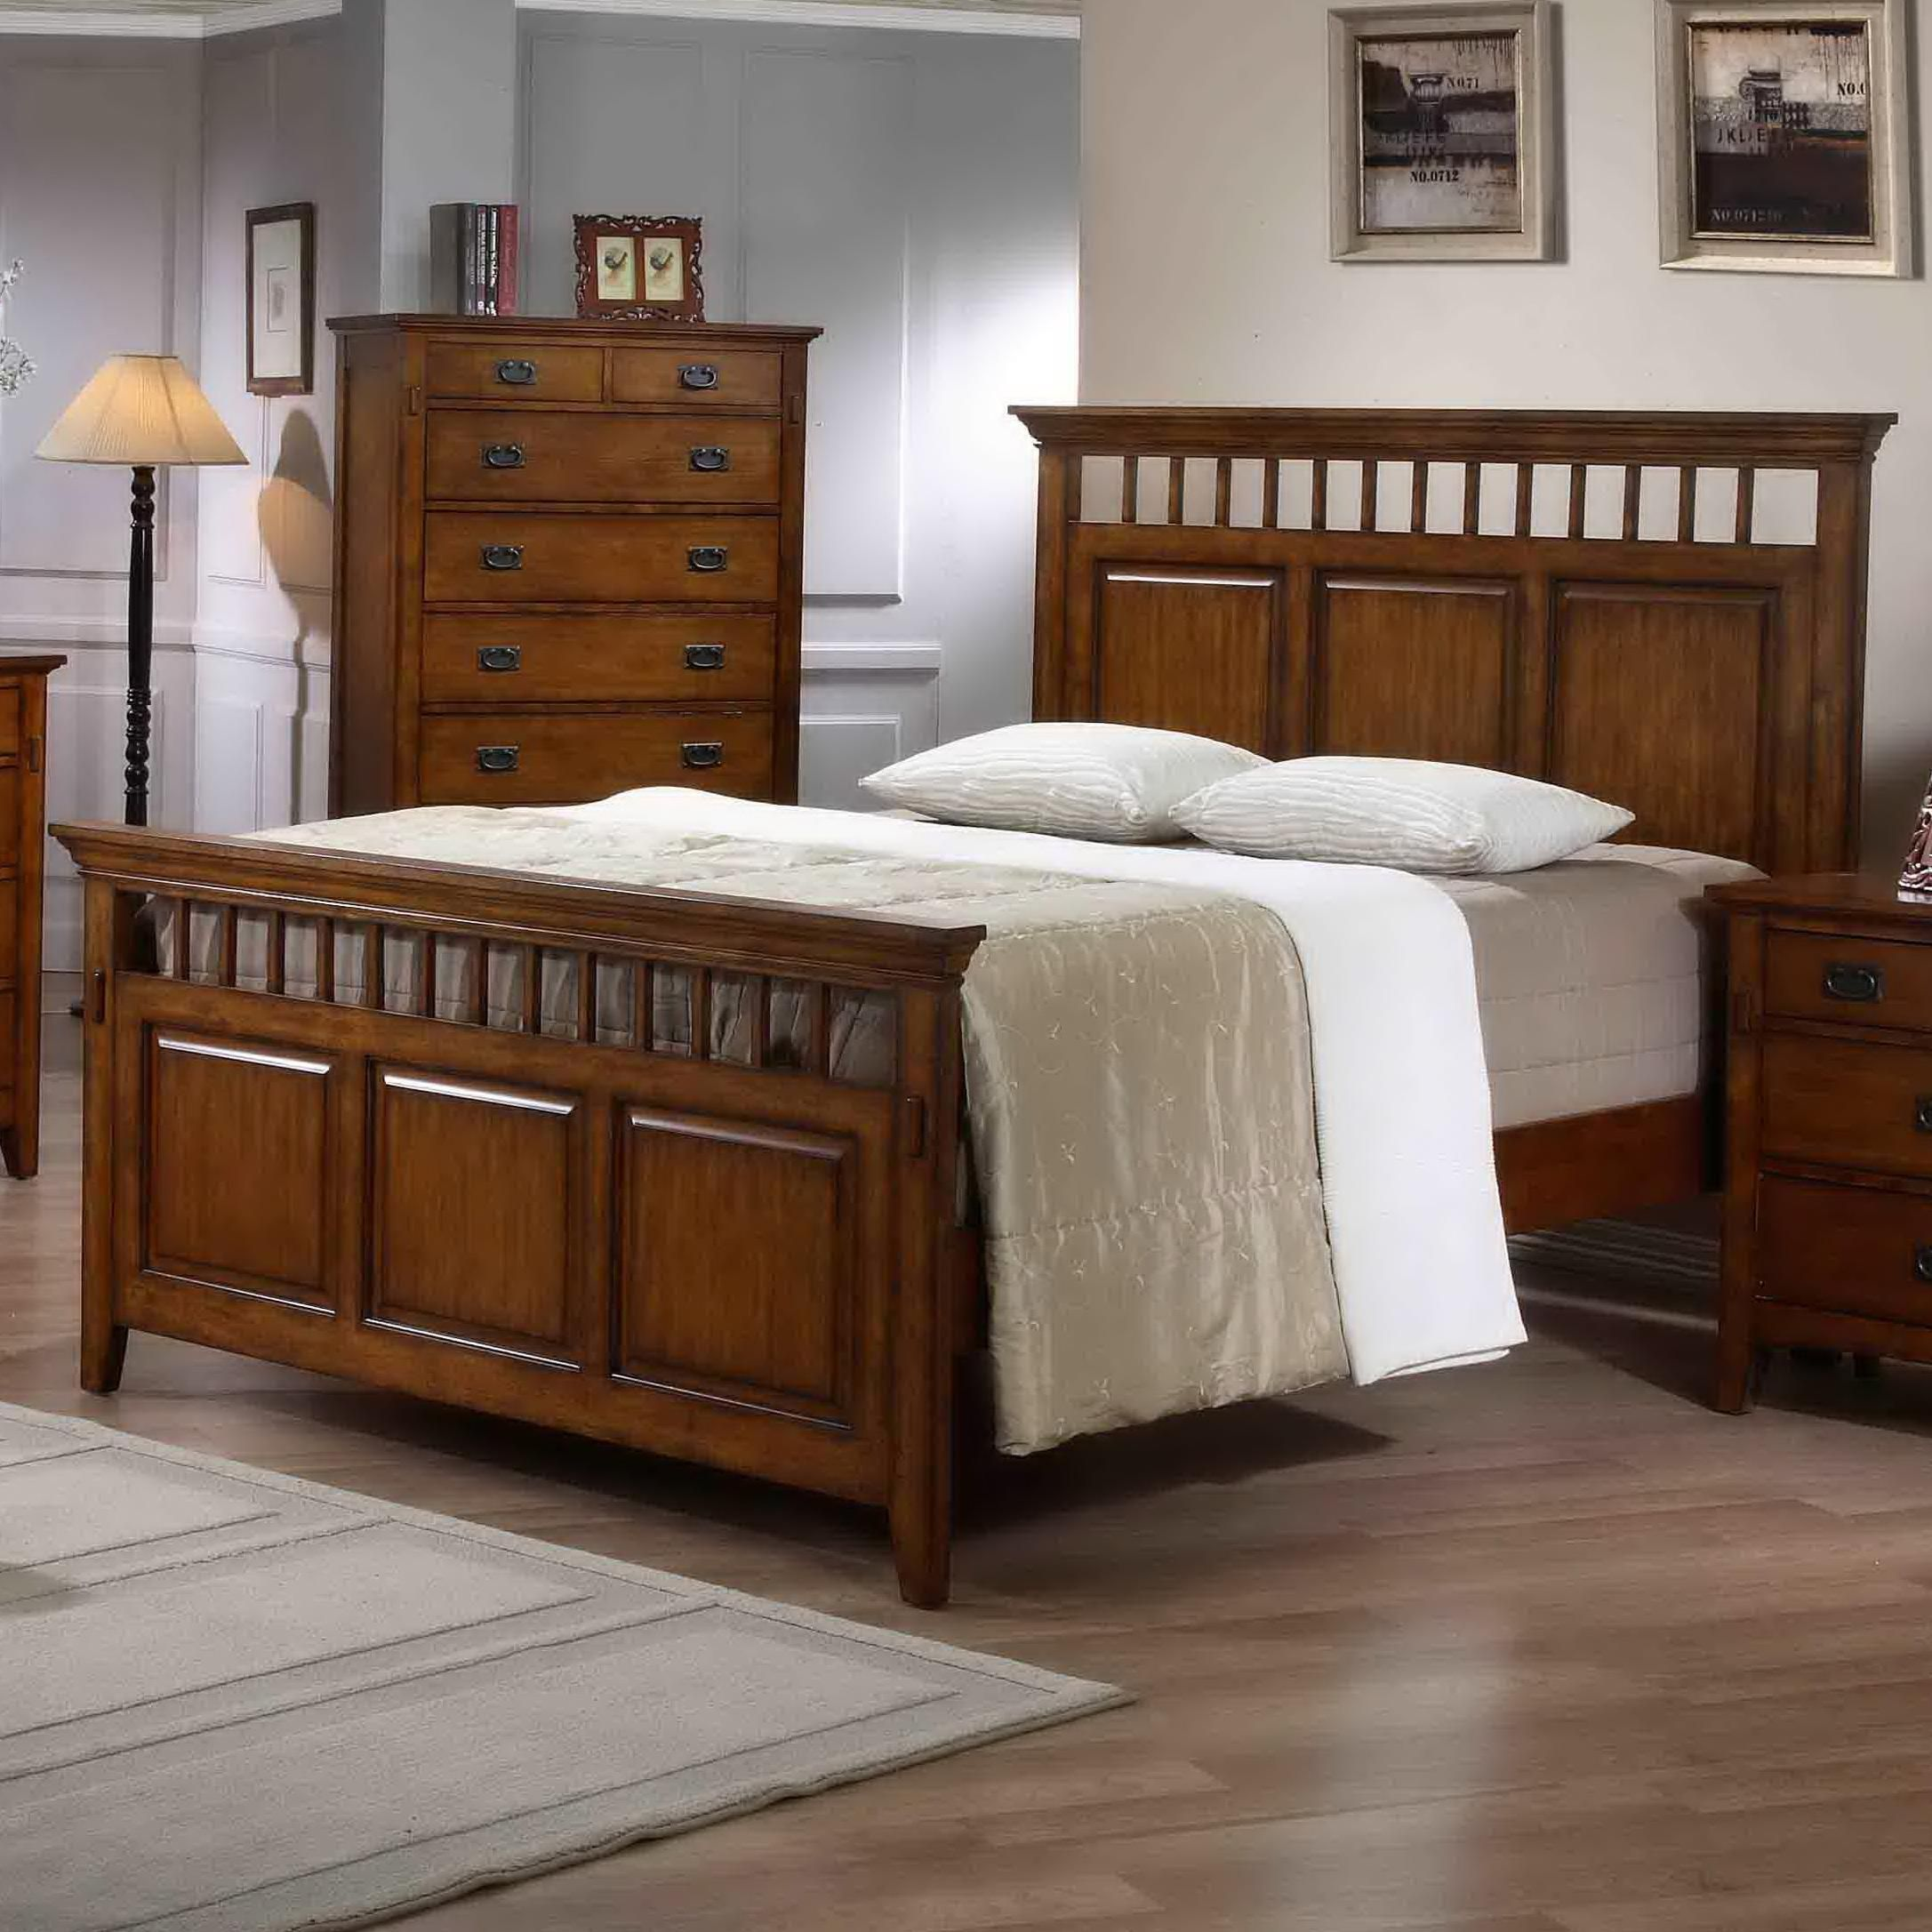 Mission style bedroom furniture - Elements International Trudy King Mission Style Panel Bed Rife S Home Furniture Headboard Footboard